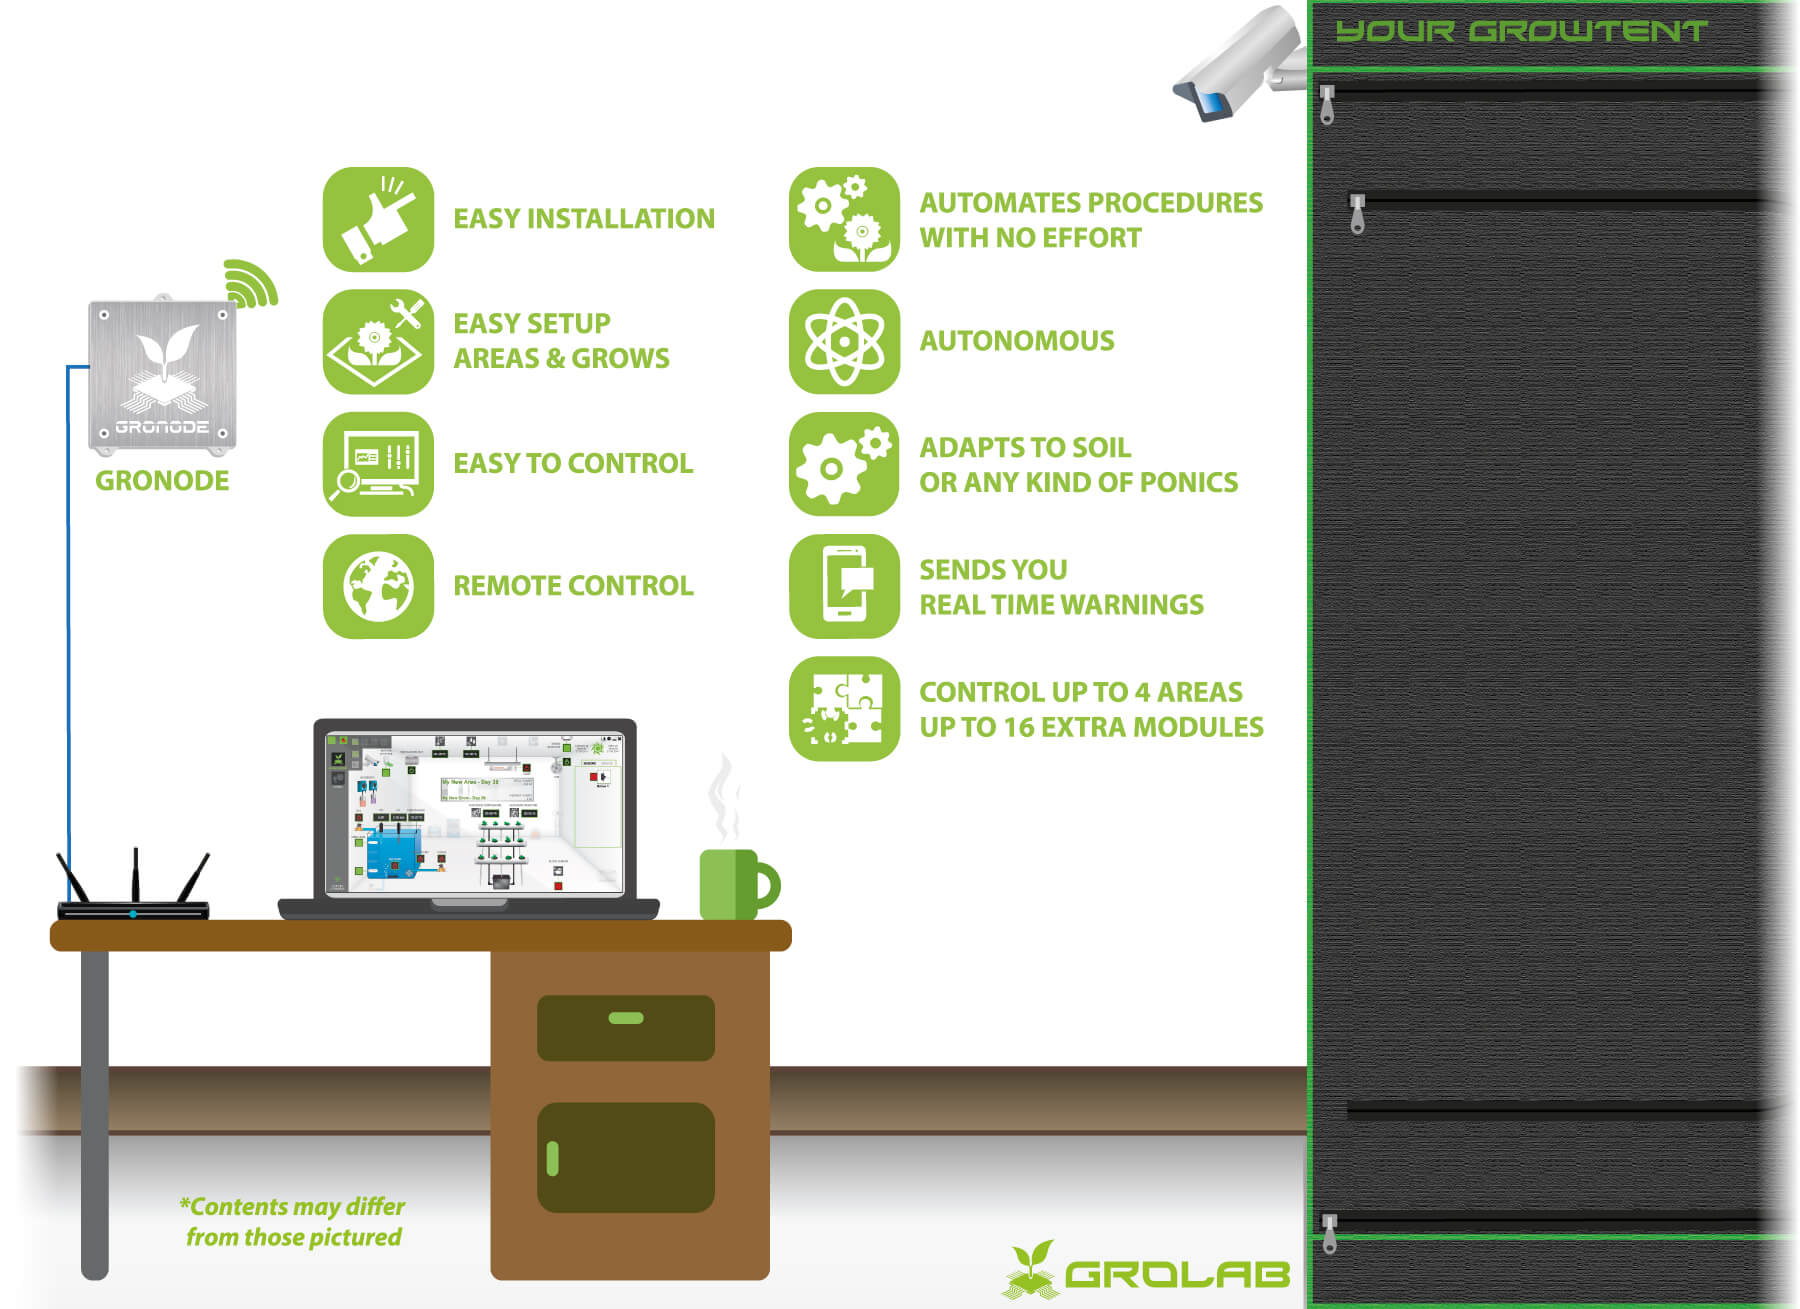 GroNode configuration schematic, the core of the GroLab grow controller automation system